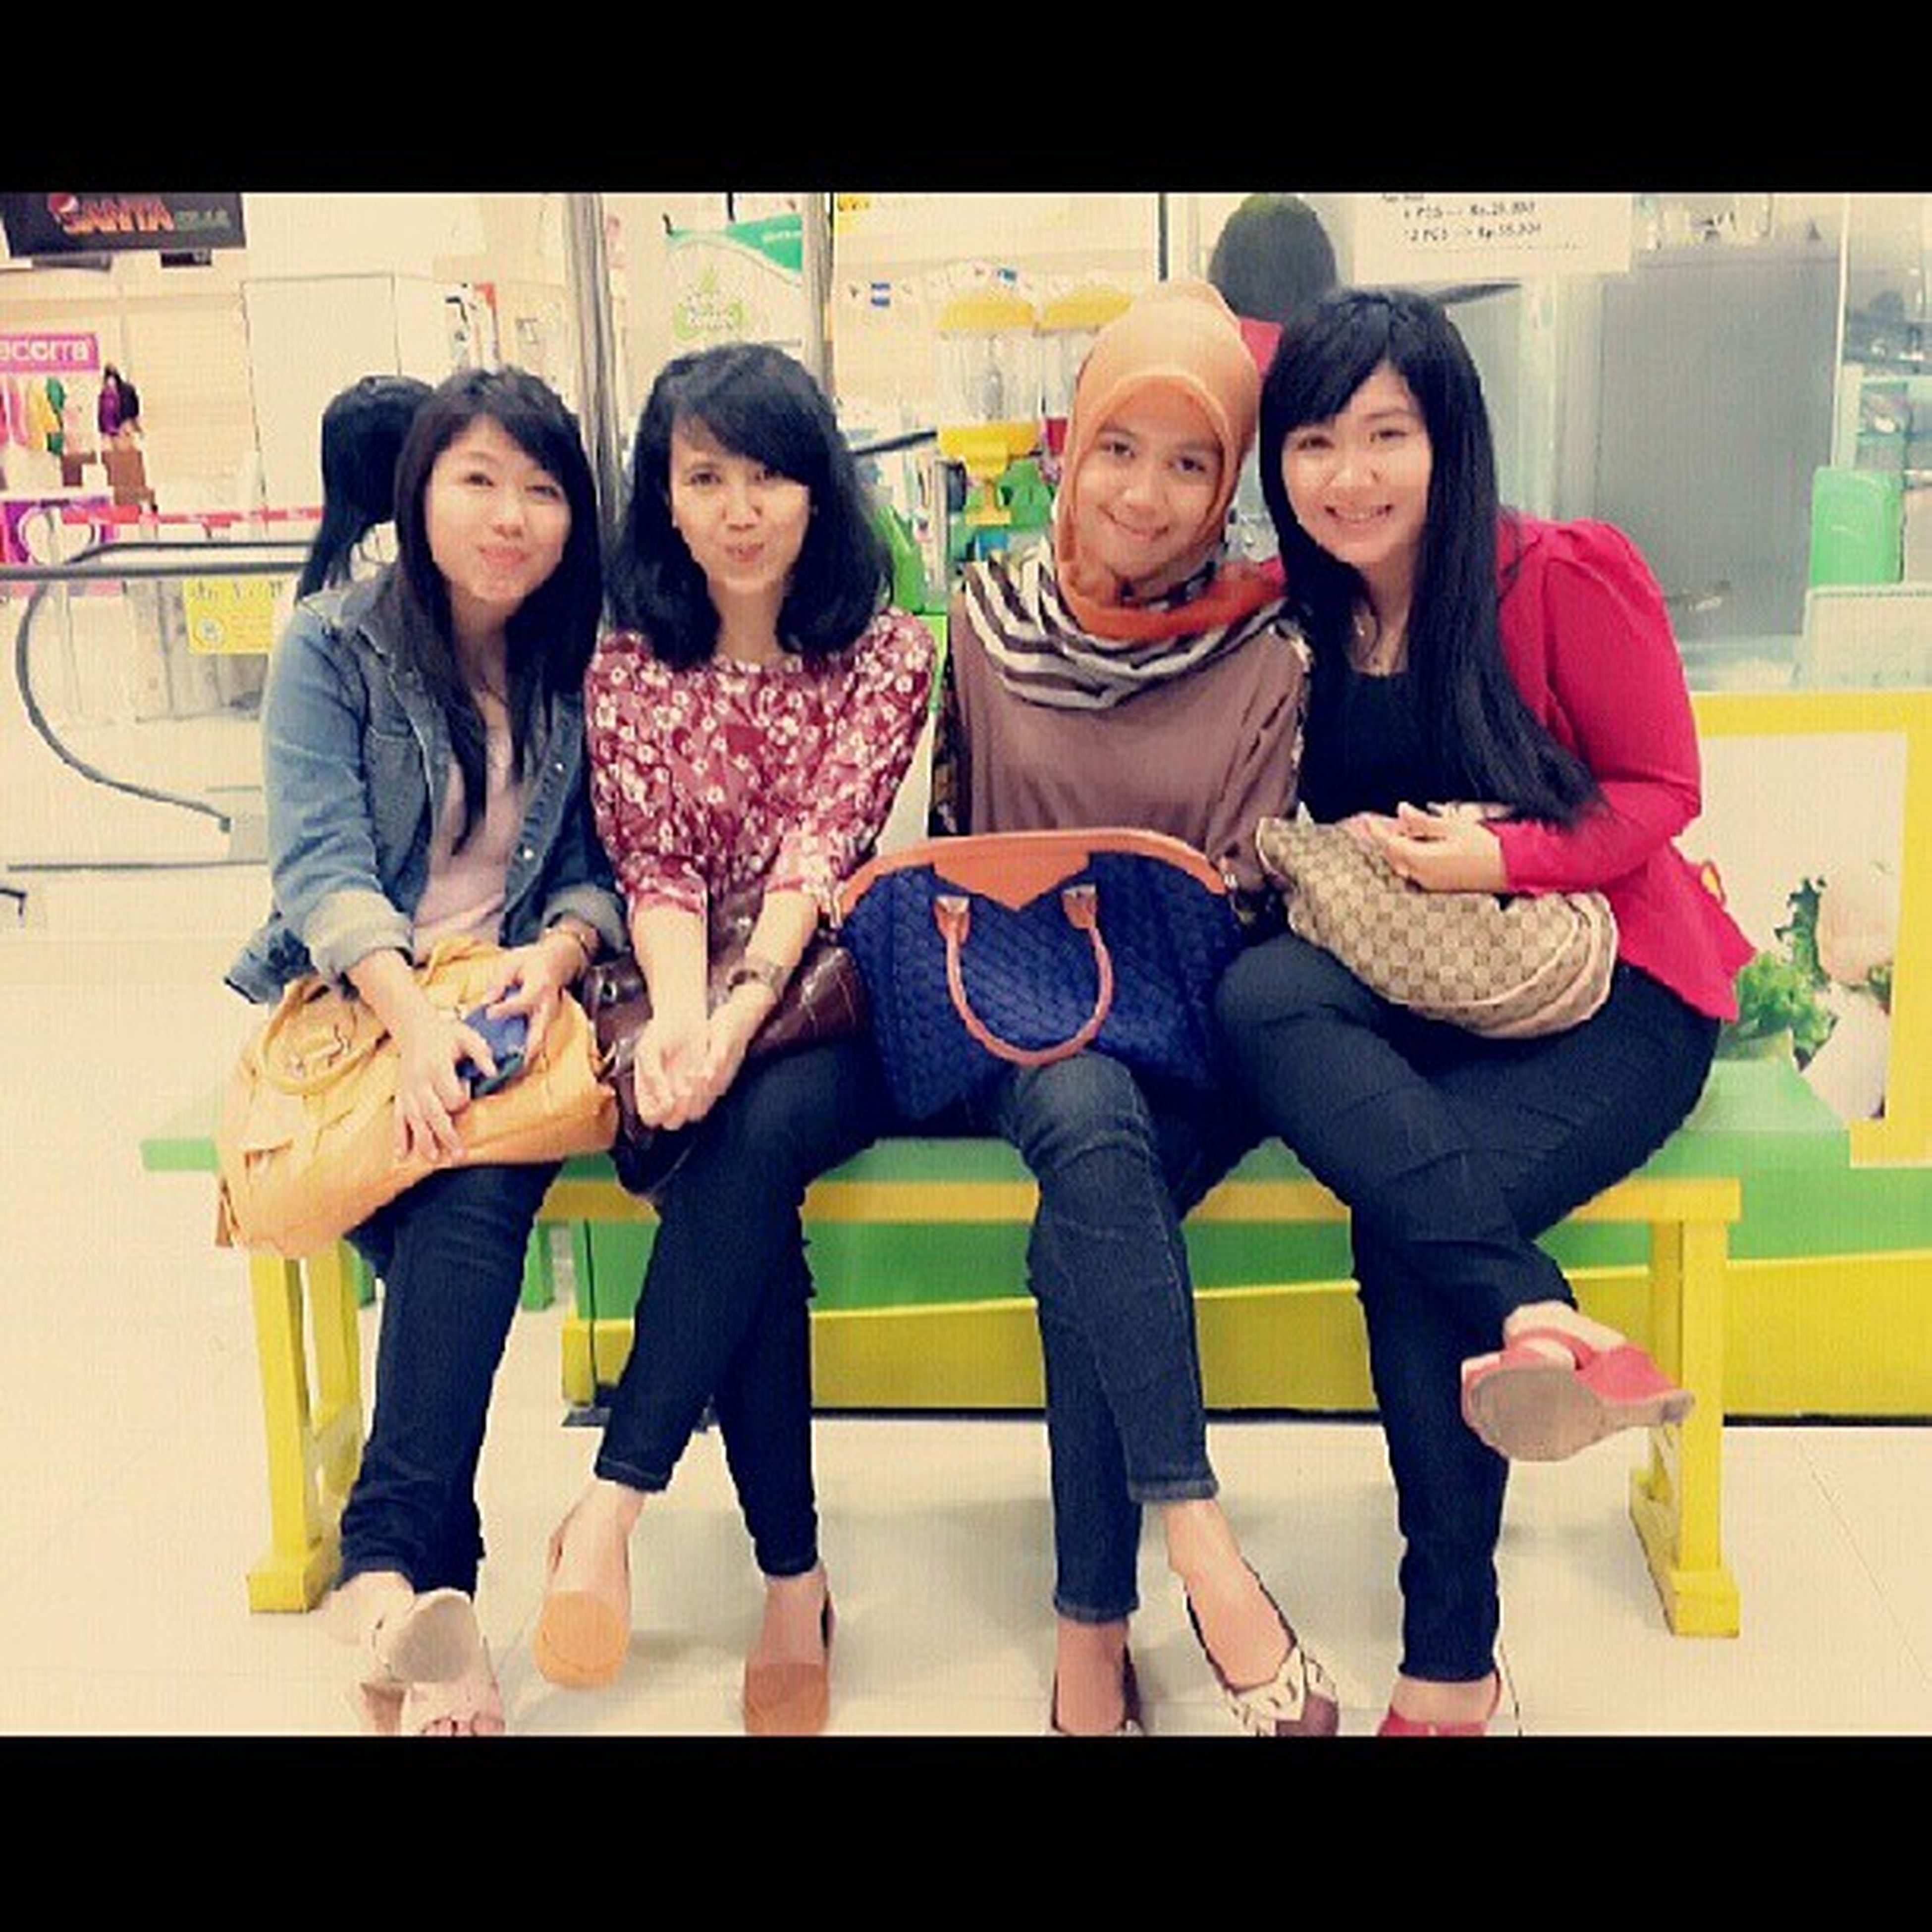 With my girls :-* Metup Instadroid Instalove Picoftheday csb hangout girls bukber indonesia